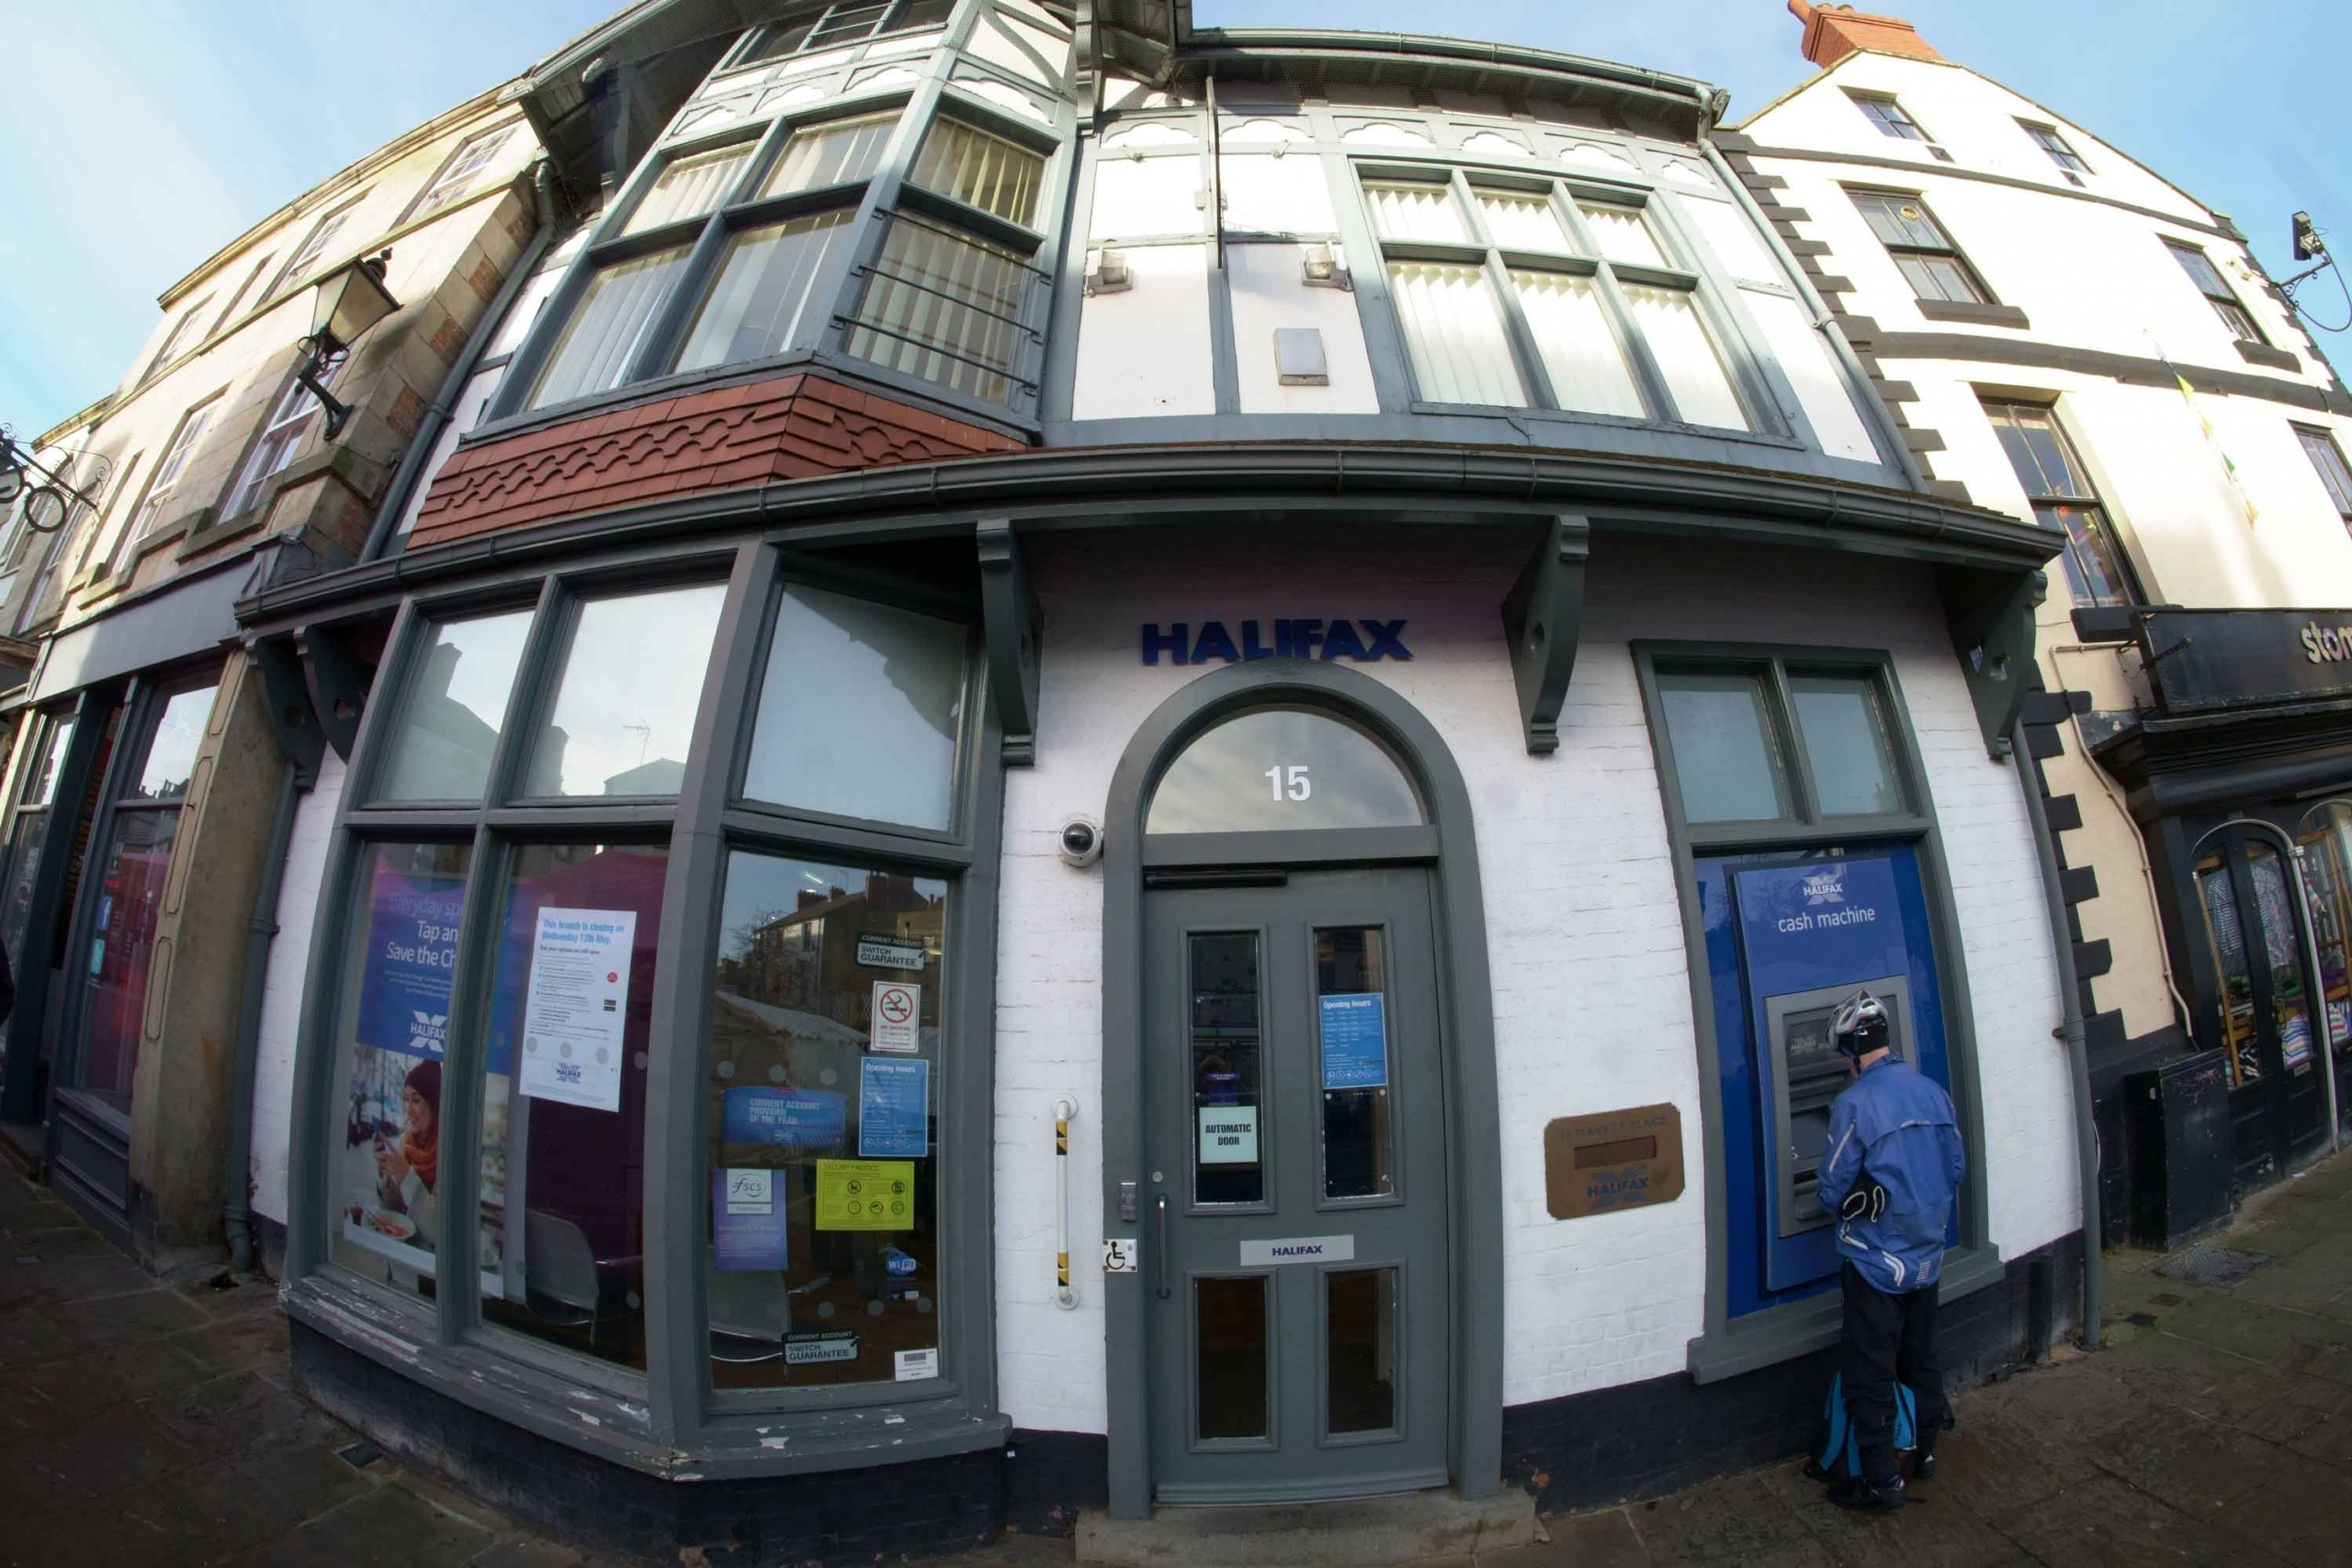 Closure of local bank branch: Halifax, Market Place in Knaresborough